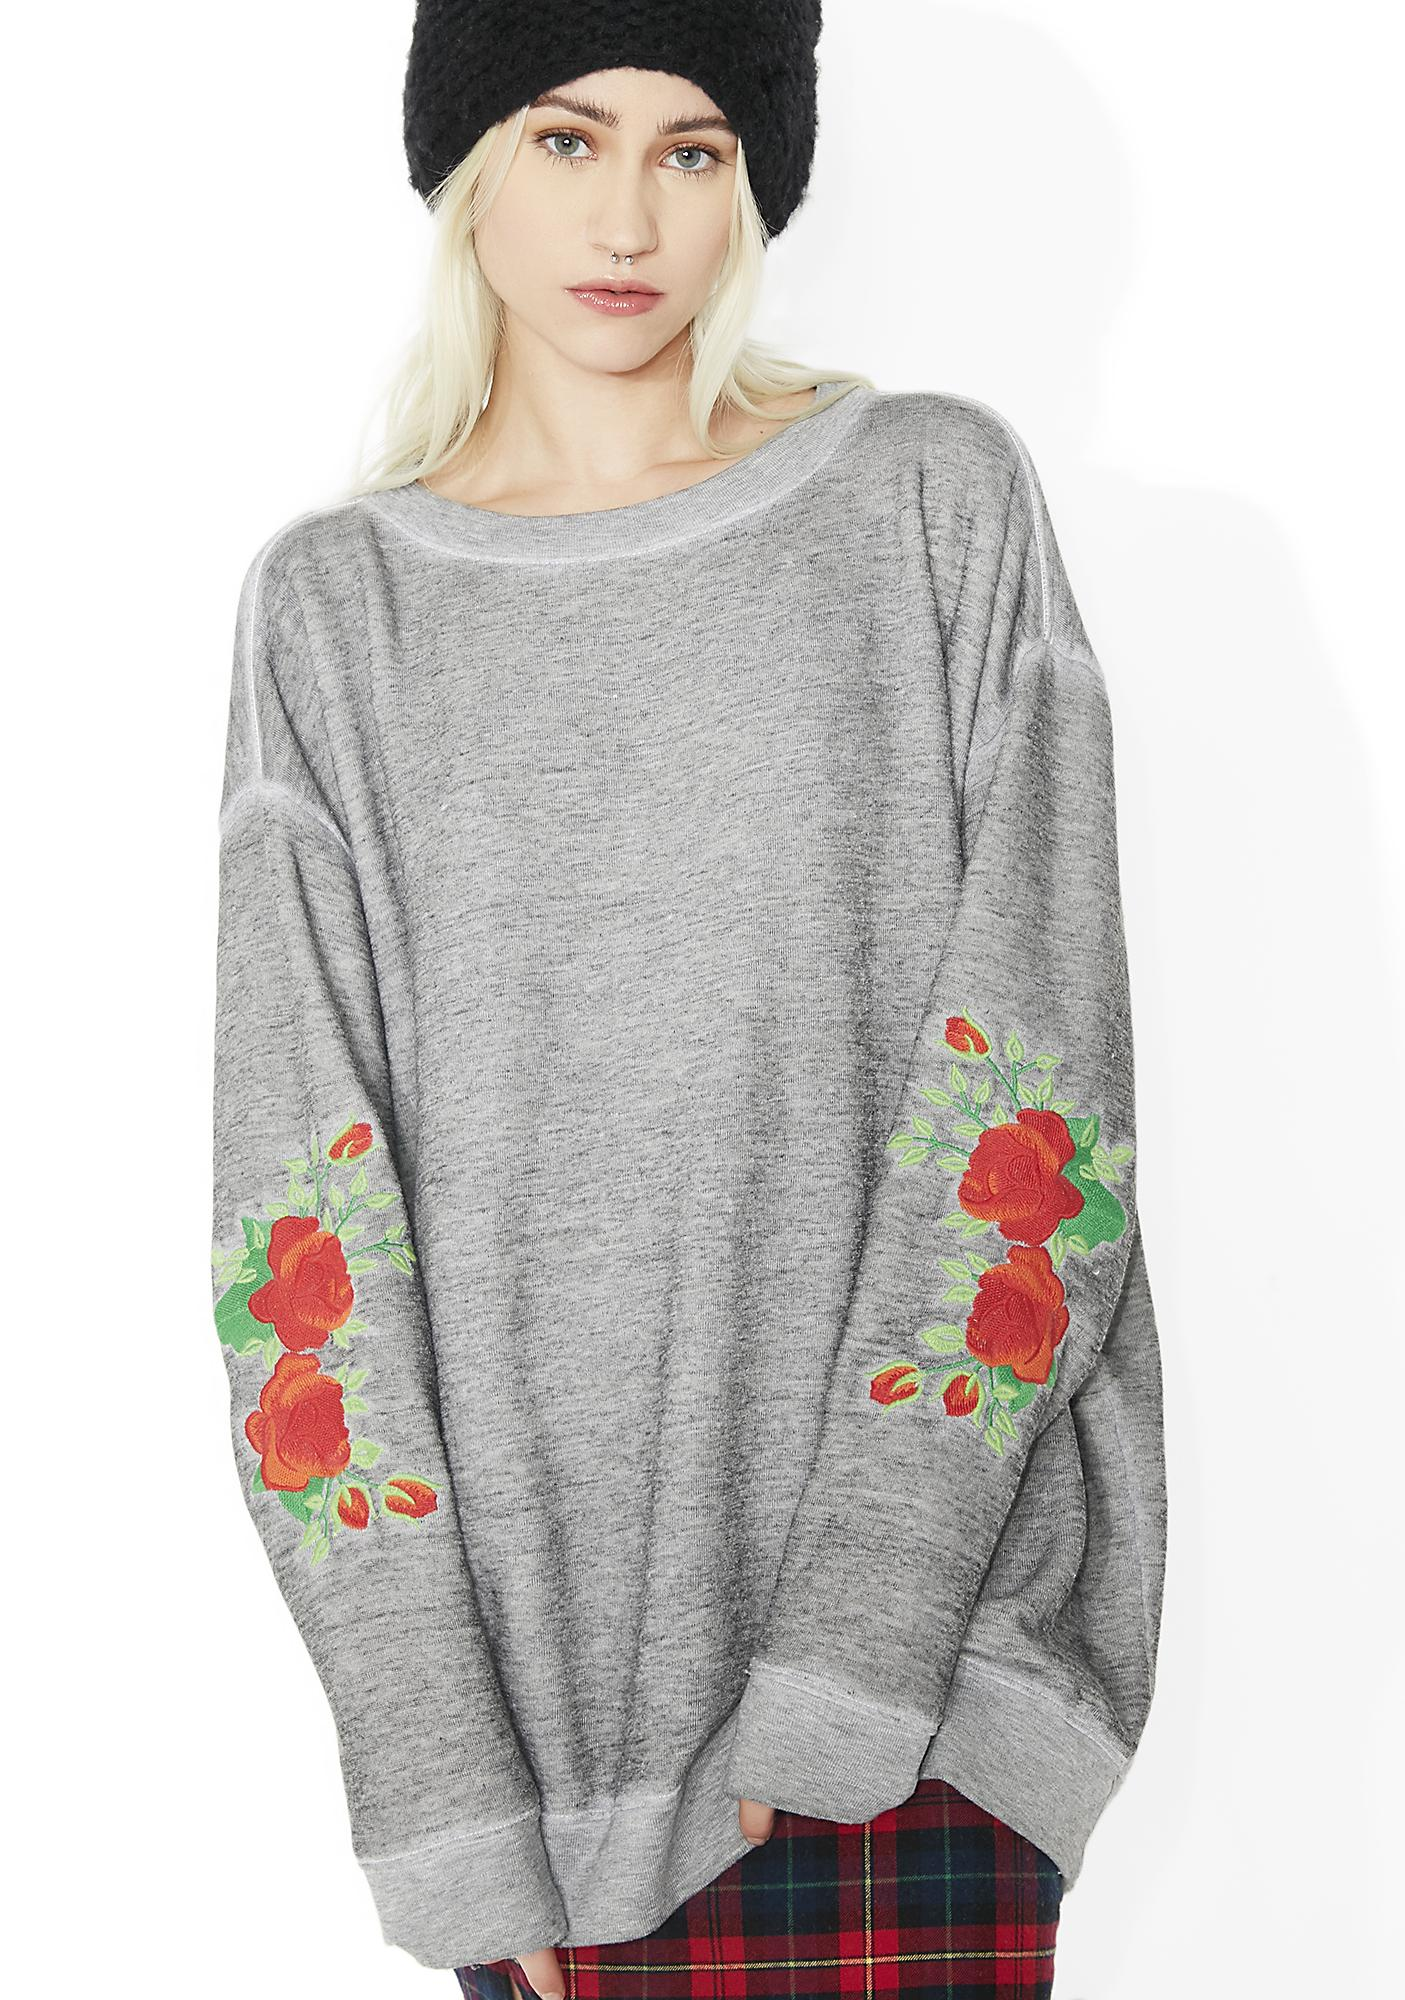 Wildfox couture roses embroidery roadtrip sweater dolls kill